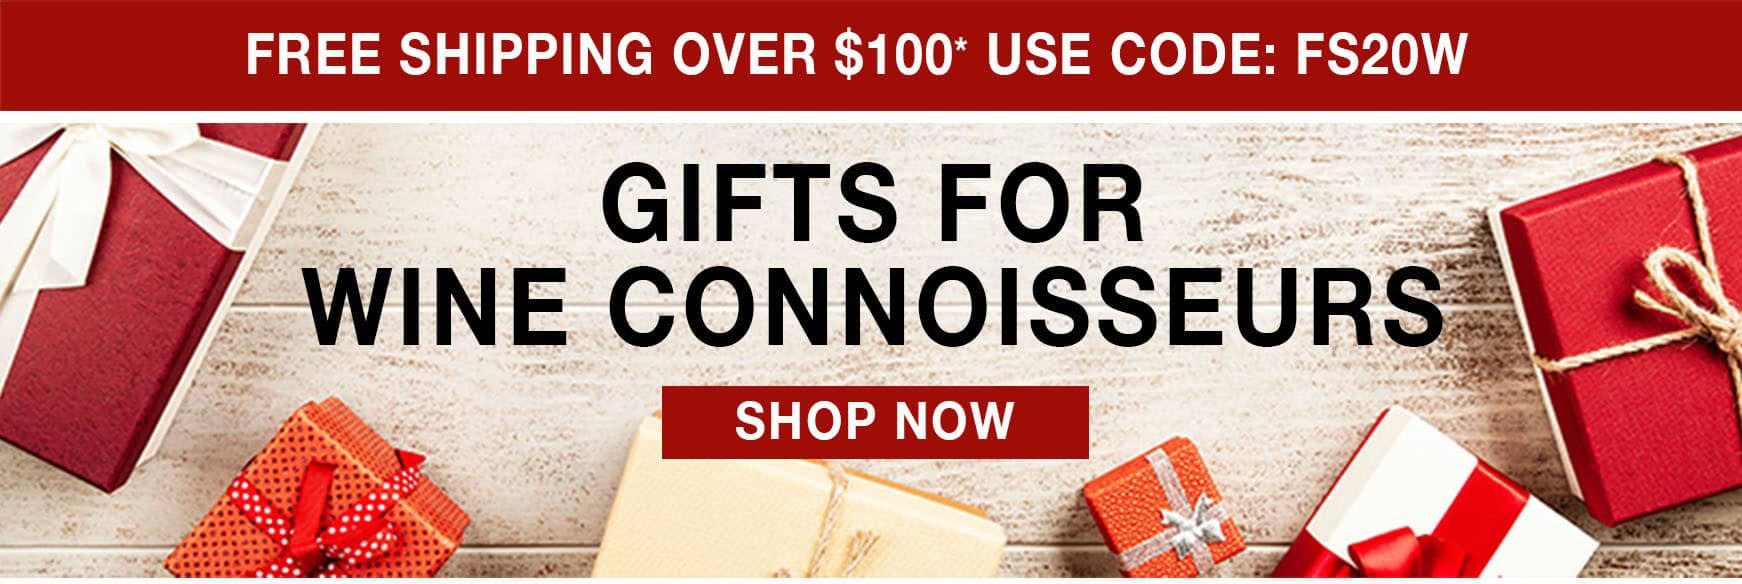 Gifts for Wine Connoisseurs - Free Shipping Over $100* Use Code FS20W